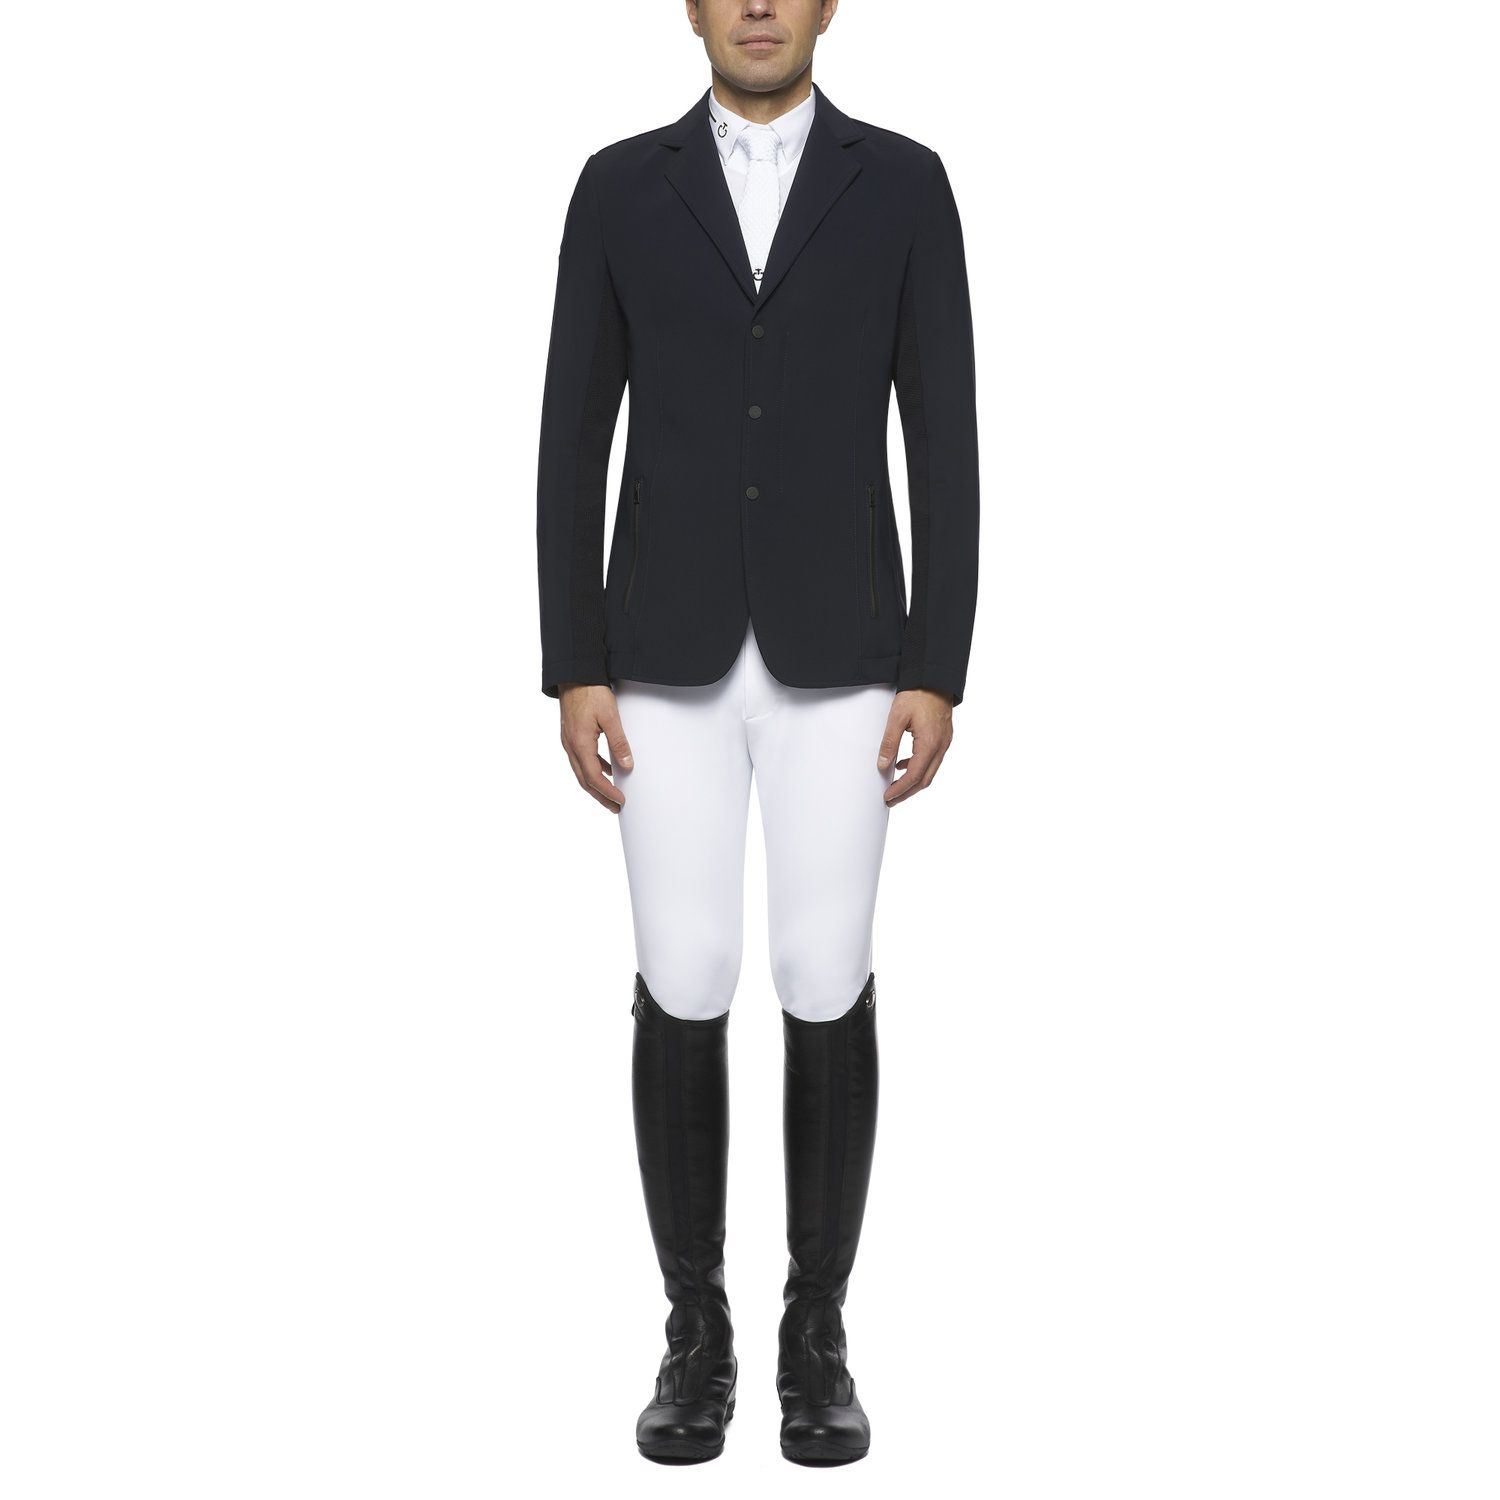 Men's zip riding jacket with technical knit inserts